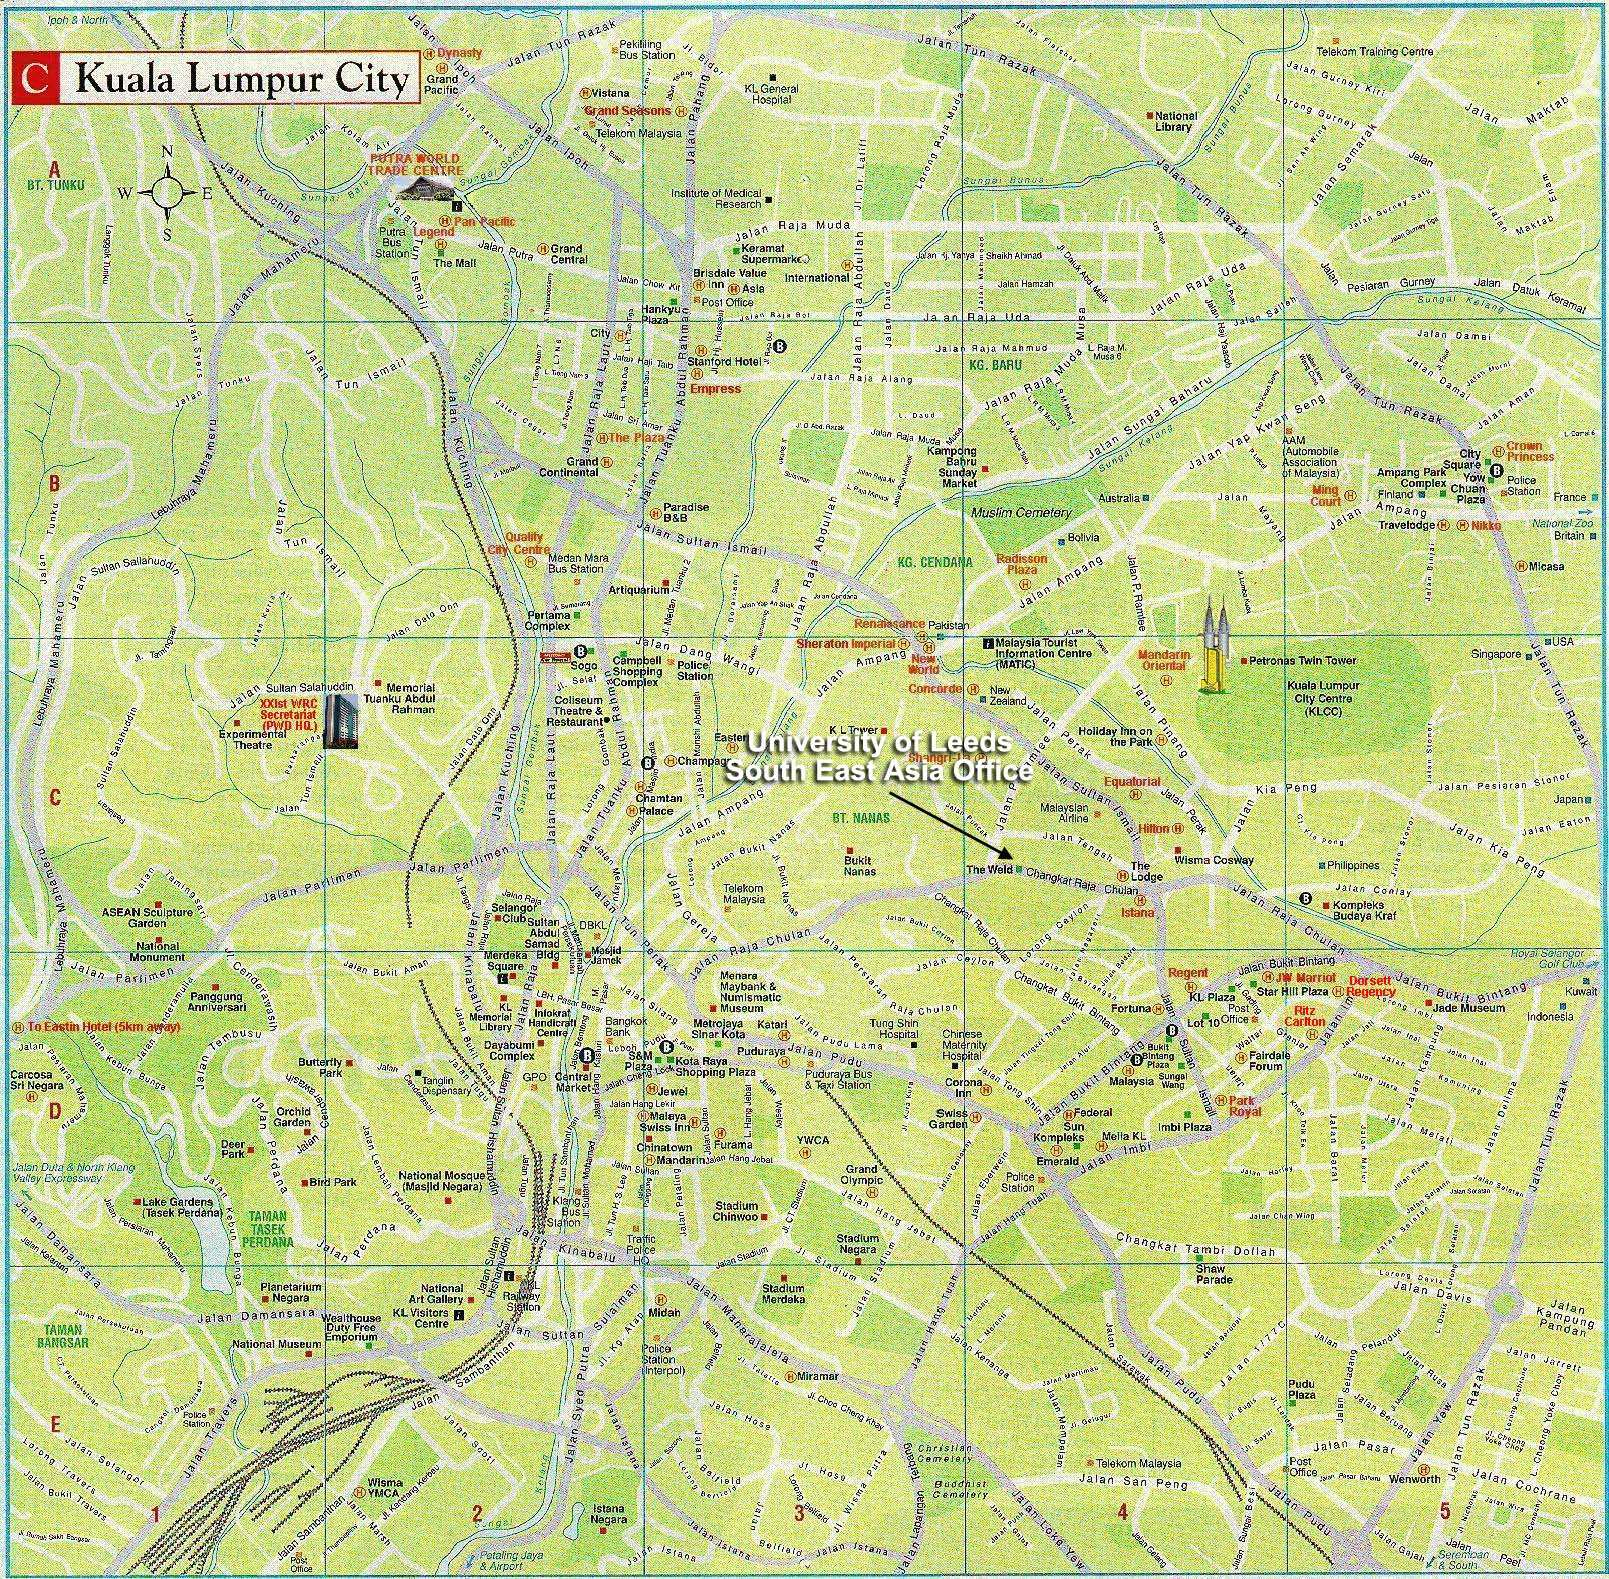 Large Kuala Lumpur Maps for Free Download and Print High